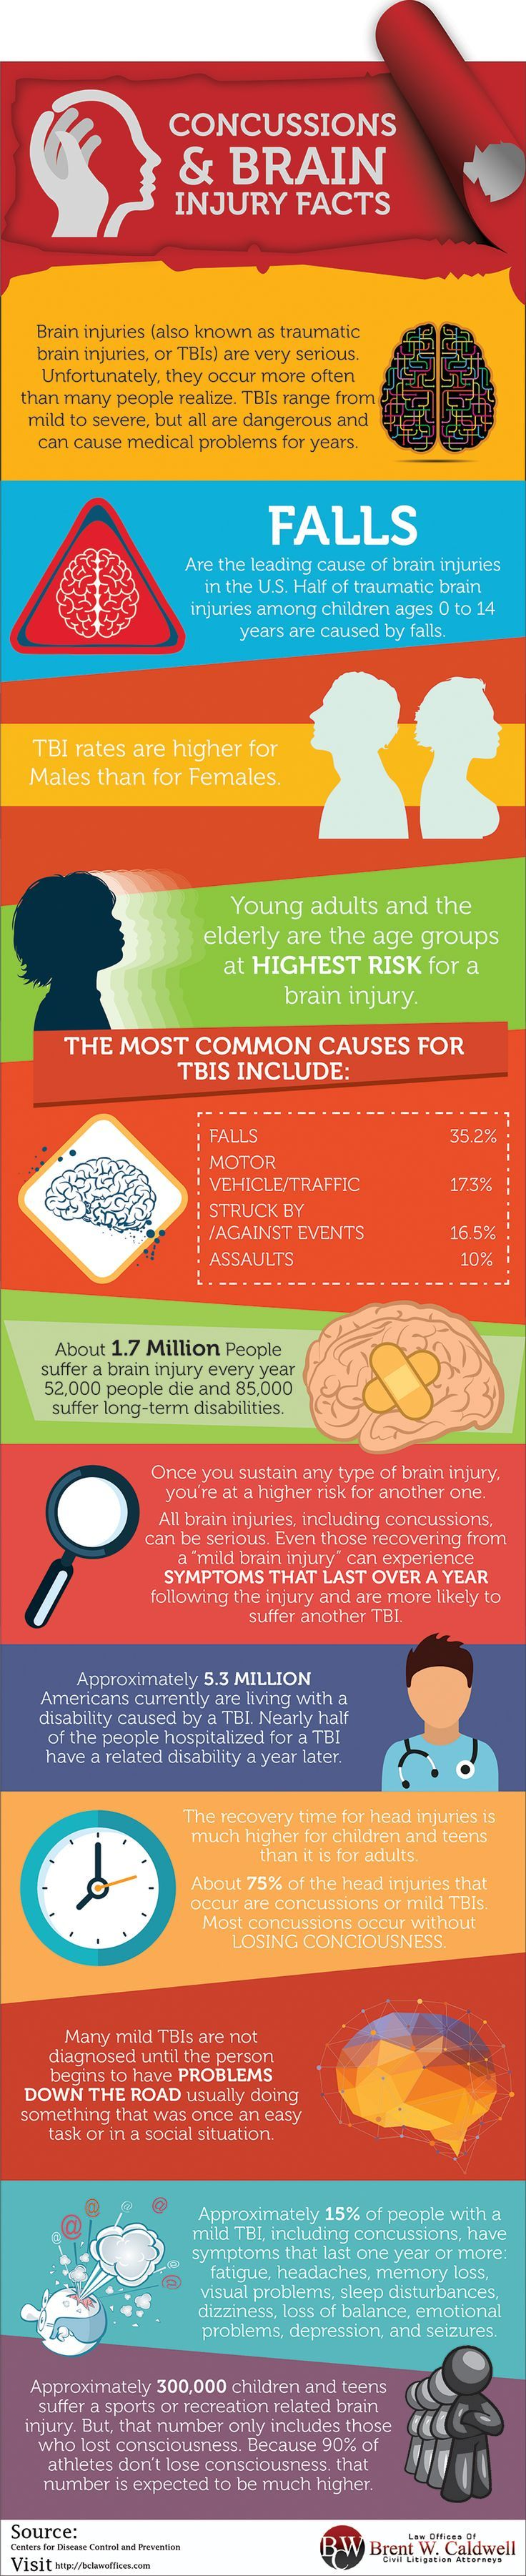 A great infographic that goes through the facts of brain injuries